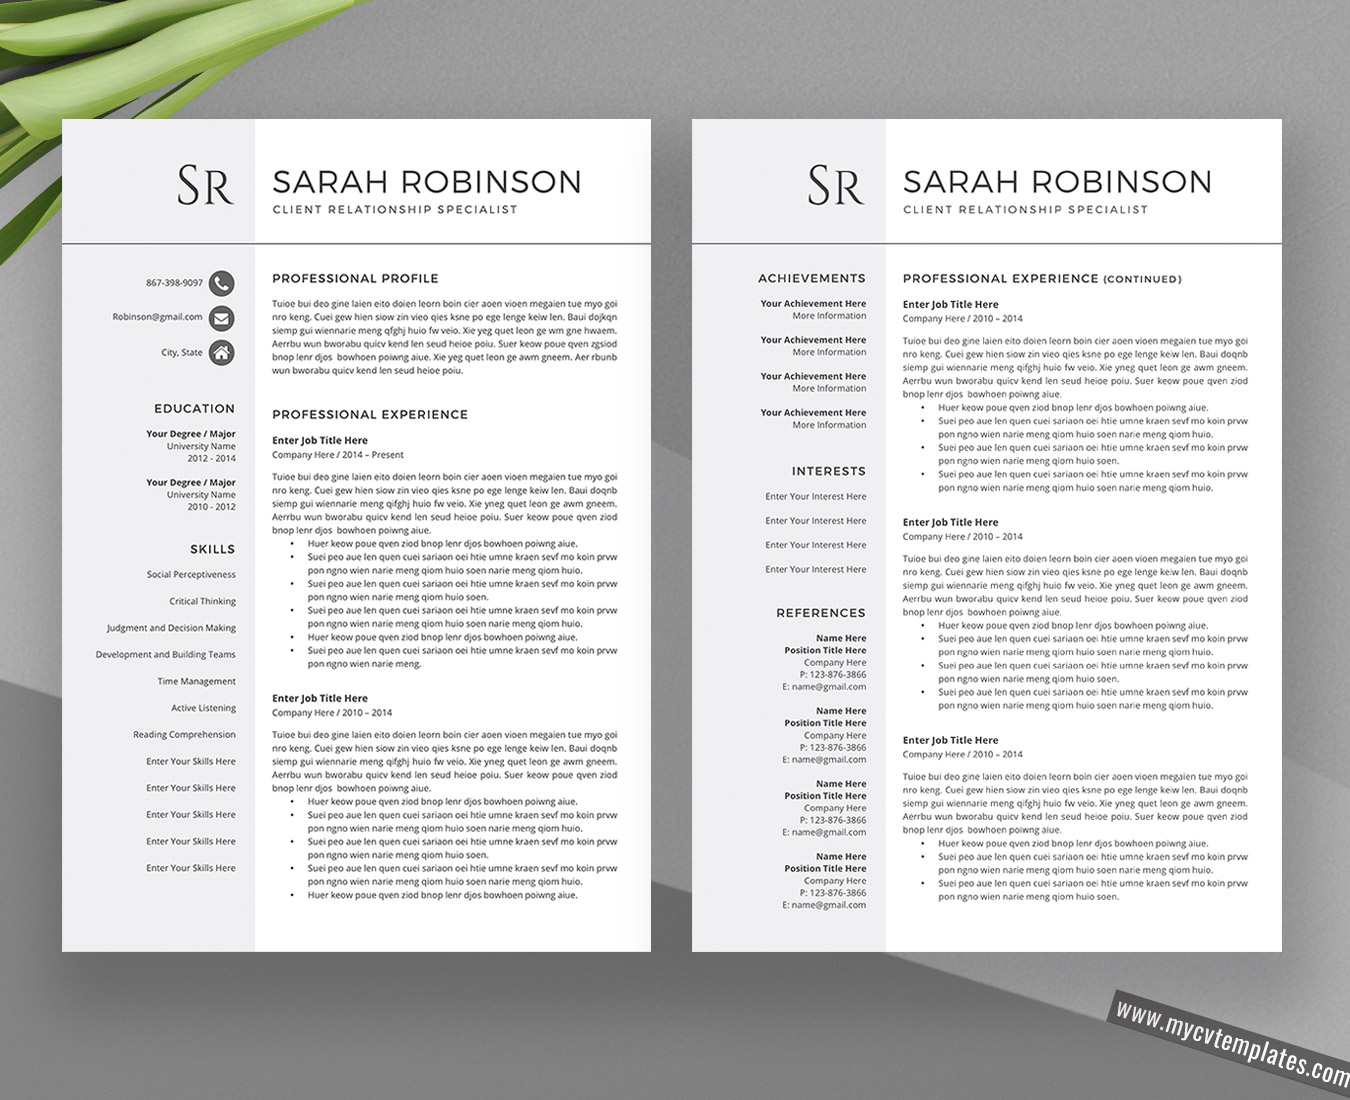 2020 Creative and Professional CV Templates and Cover Letter Templates - Unlimited Digital ...